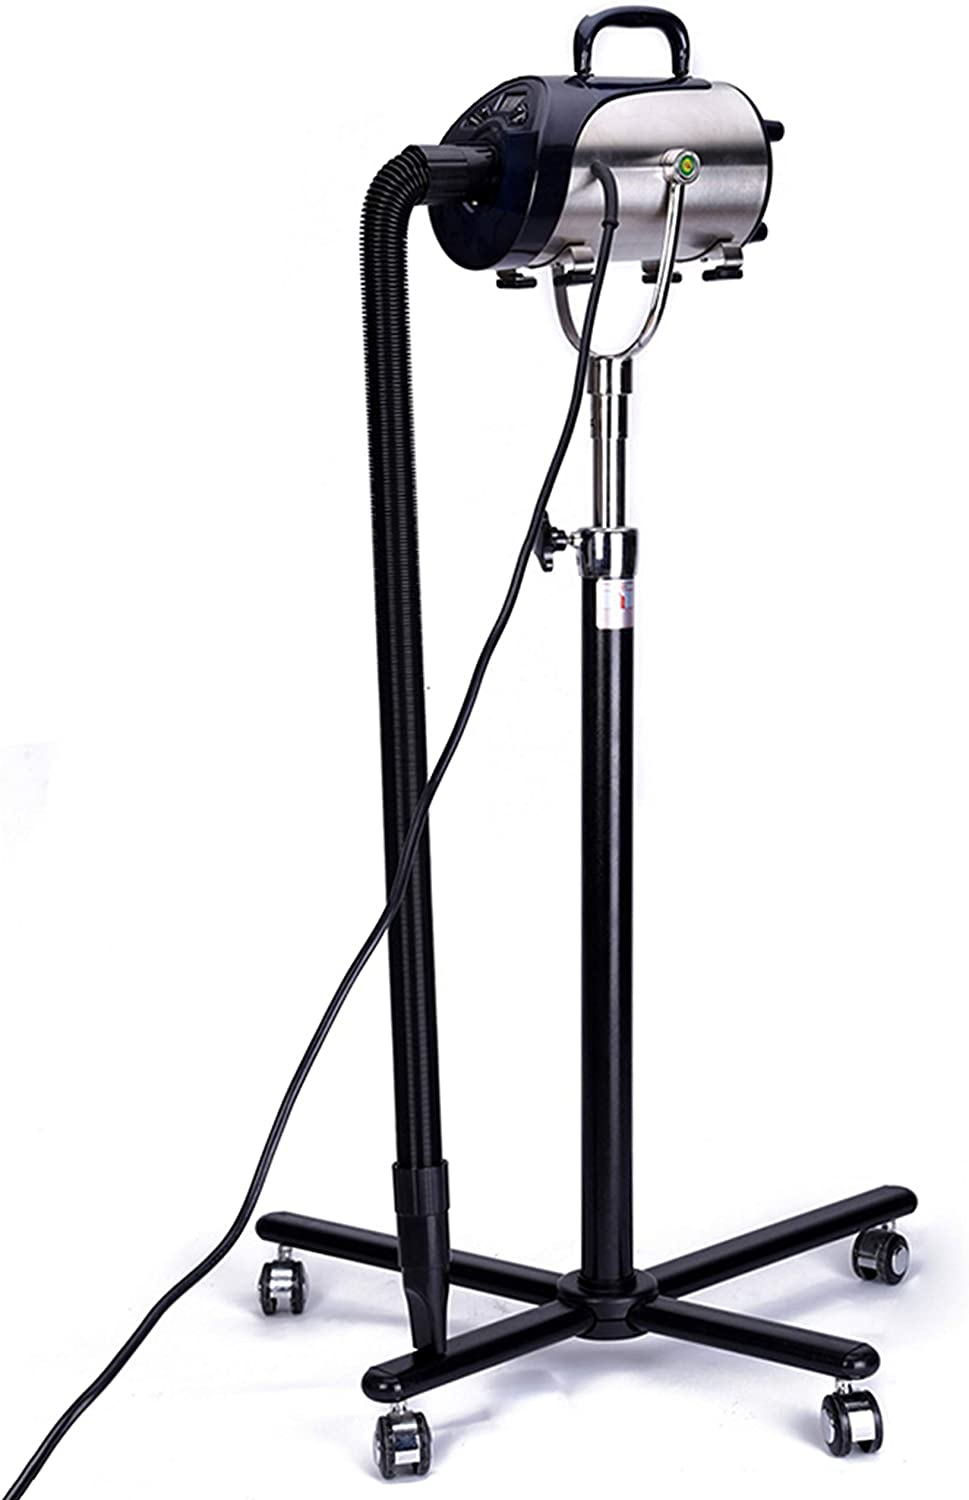 PETACARE Professional Rolling Japan Maker New Stand Pet Dryer. Do Super Powerful Outlet sale feature